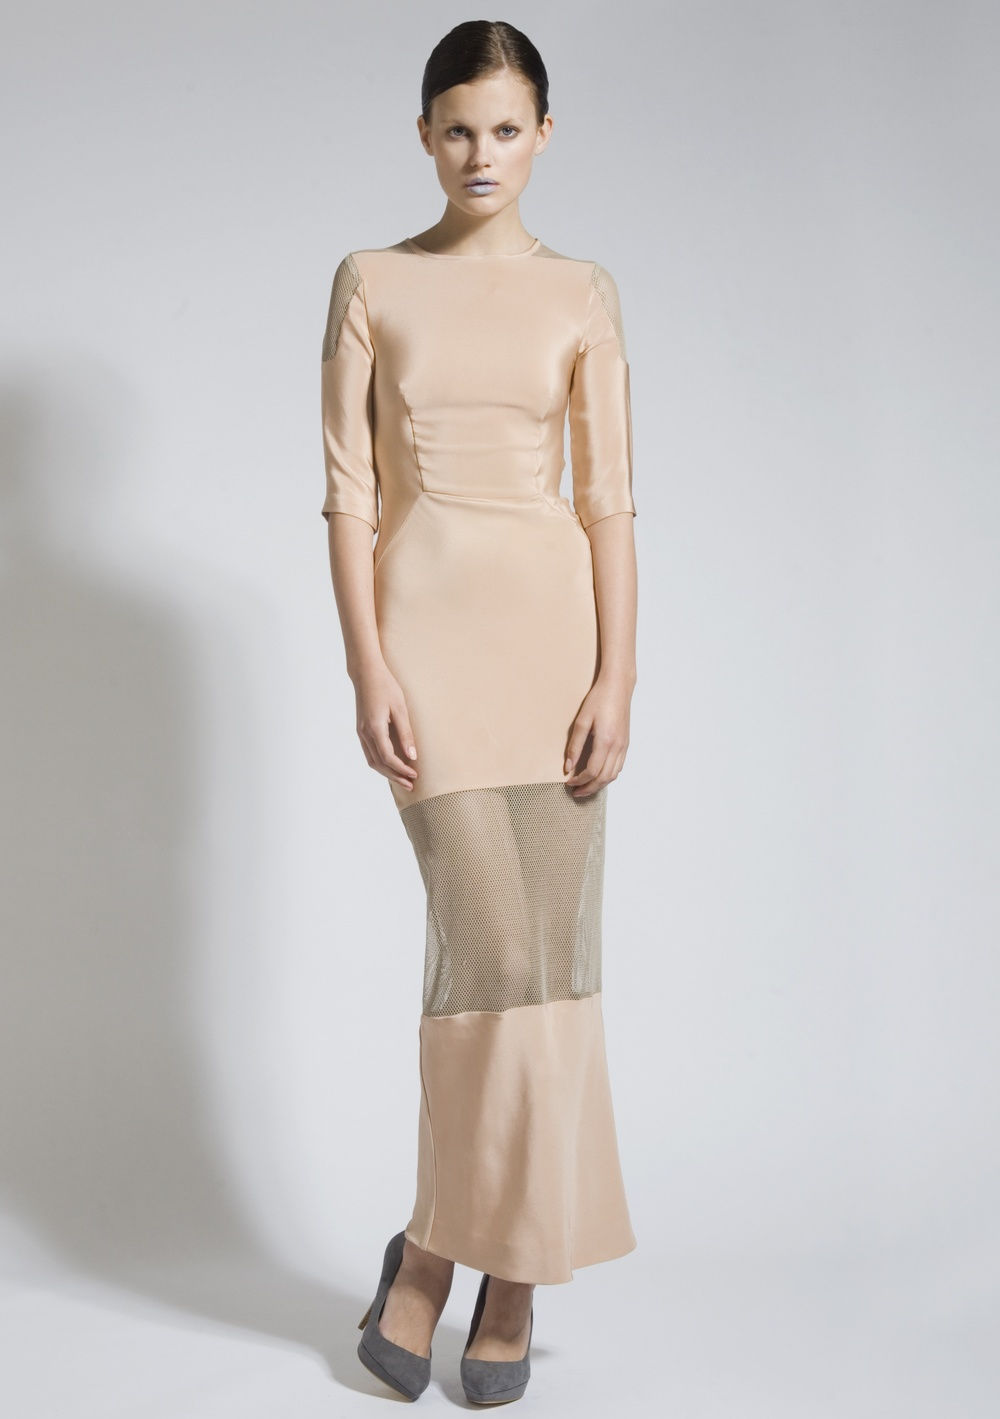 7 Nude Silk Dress with Net Inserts.jpg